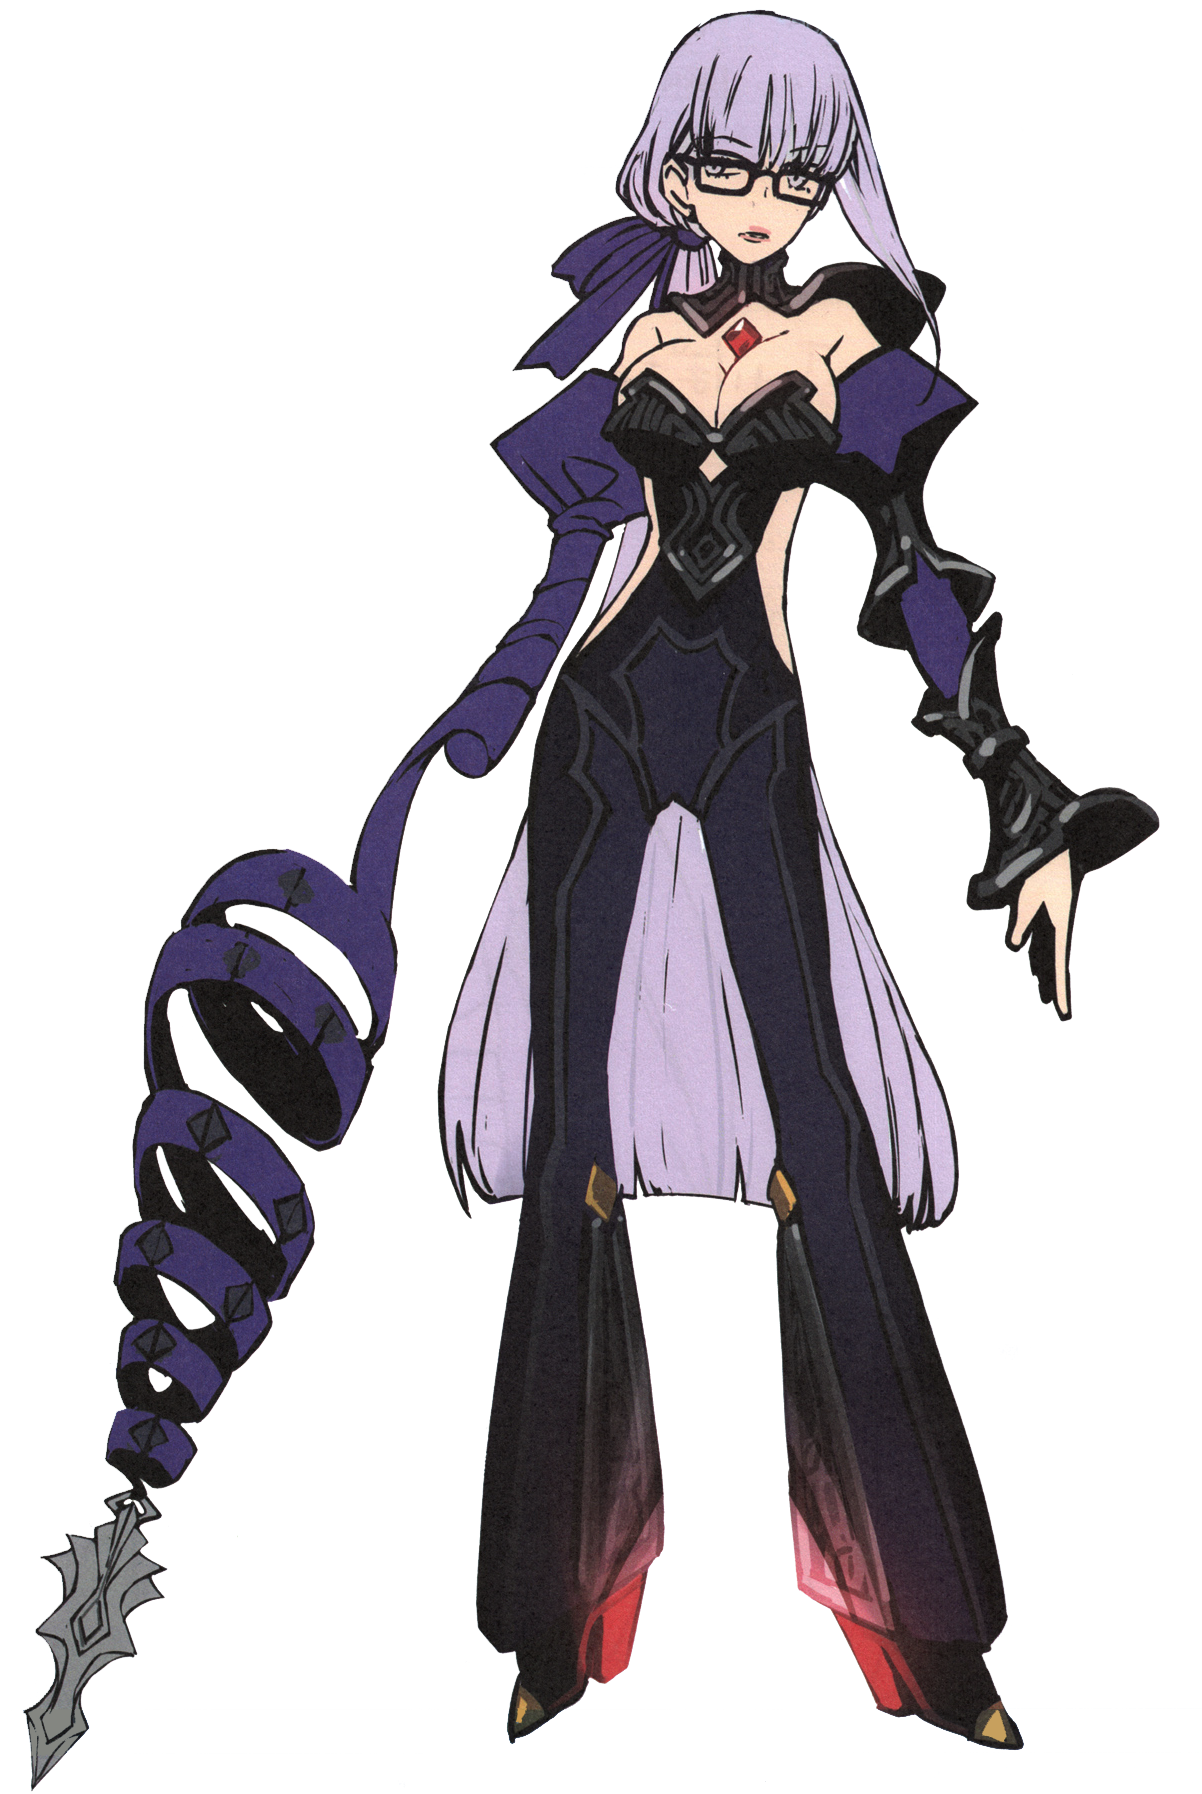 Violet | TYPE-MOON Wiki | FANDOM powered by Wikia